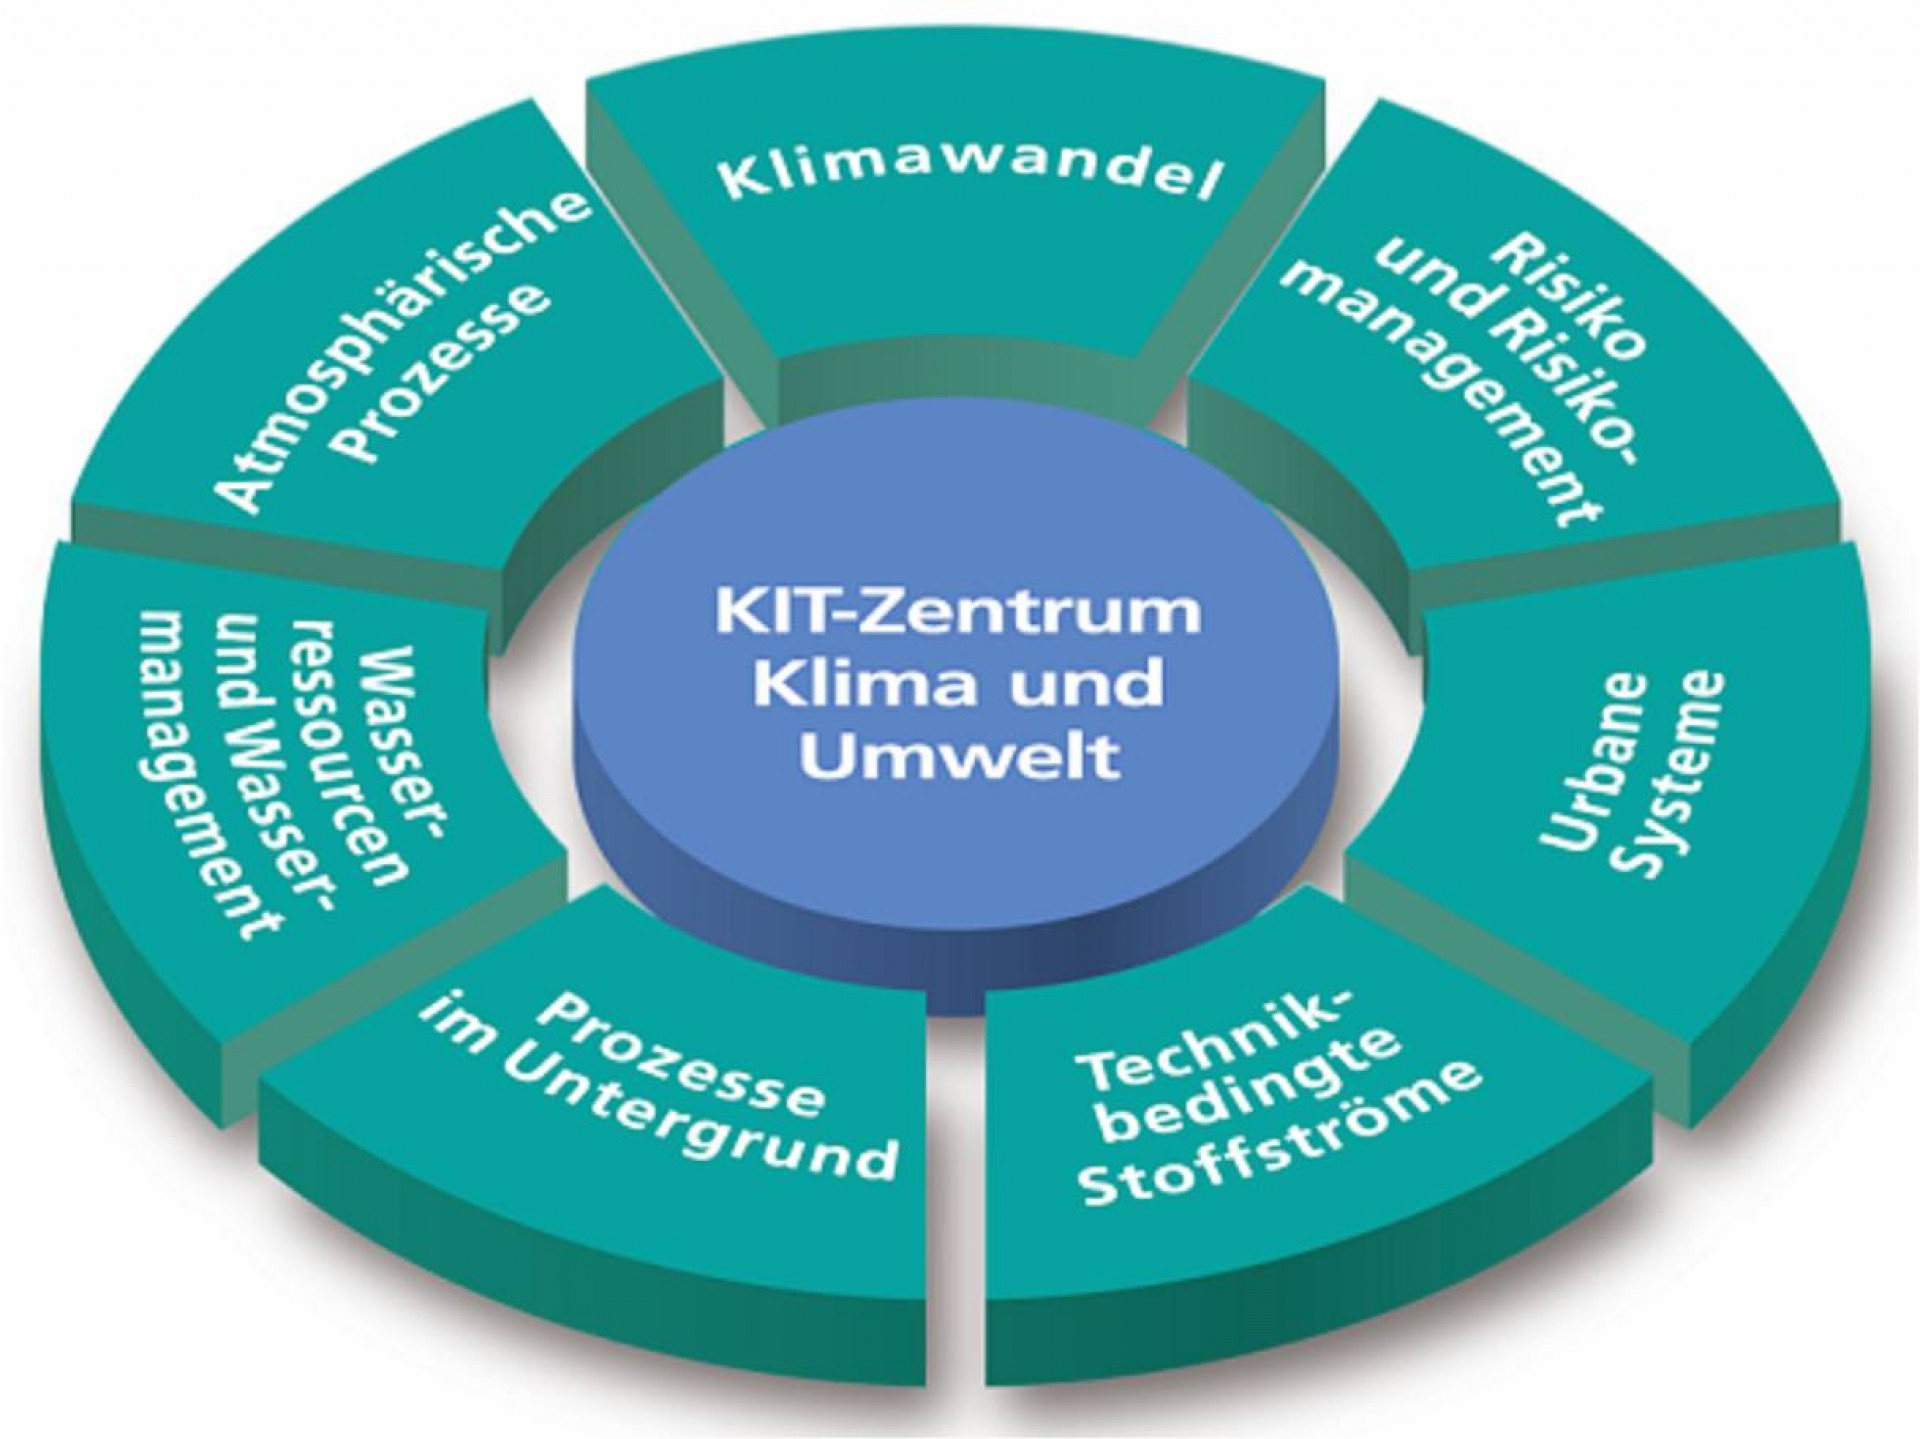 014 03 Kit Zentrum Klimaumwelt Topictorte Essay Example Criminal Justice Unique Topics Canadian Compare And Contrast Youth Act 1920